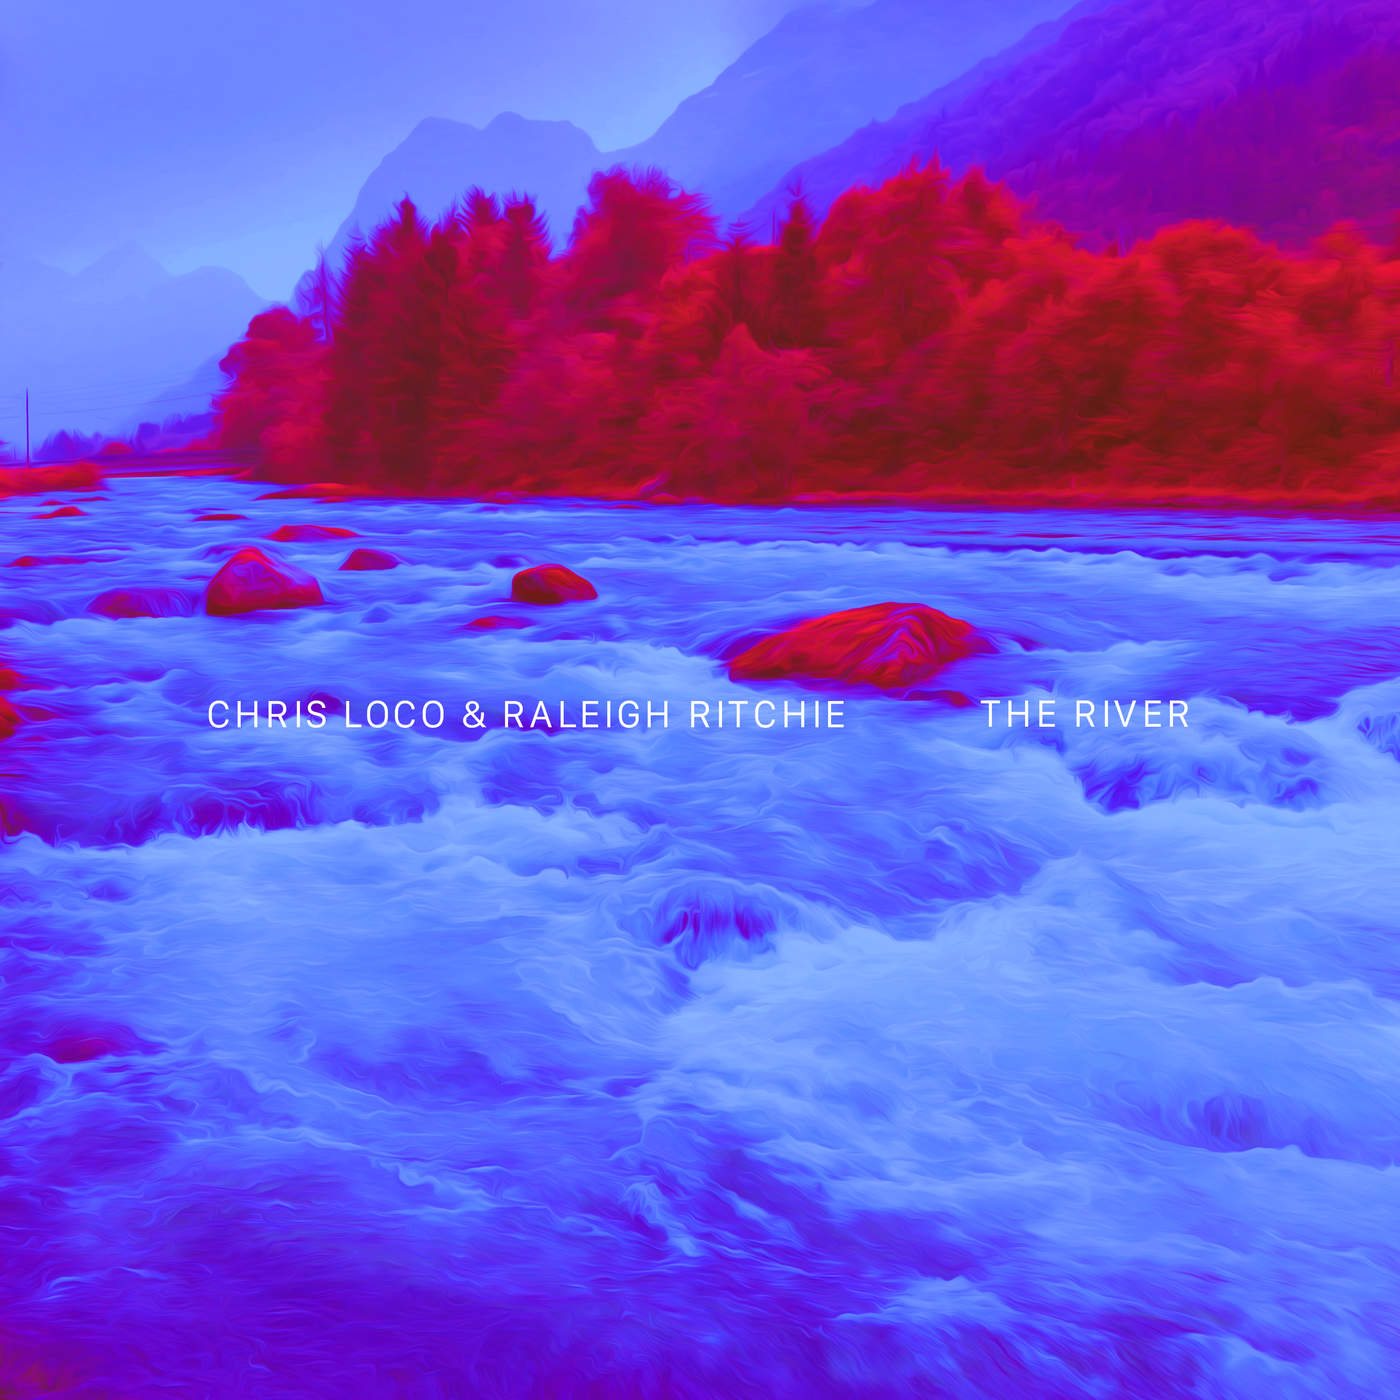 Chris Loco & Raleigh Ritchie - The River - Single